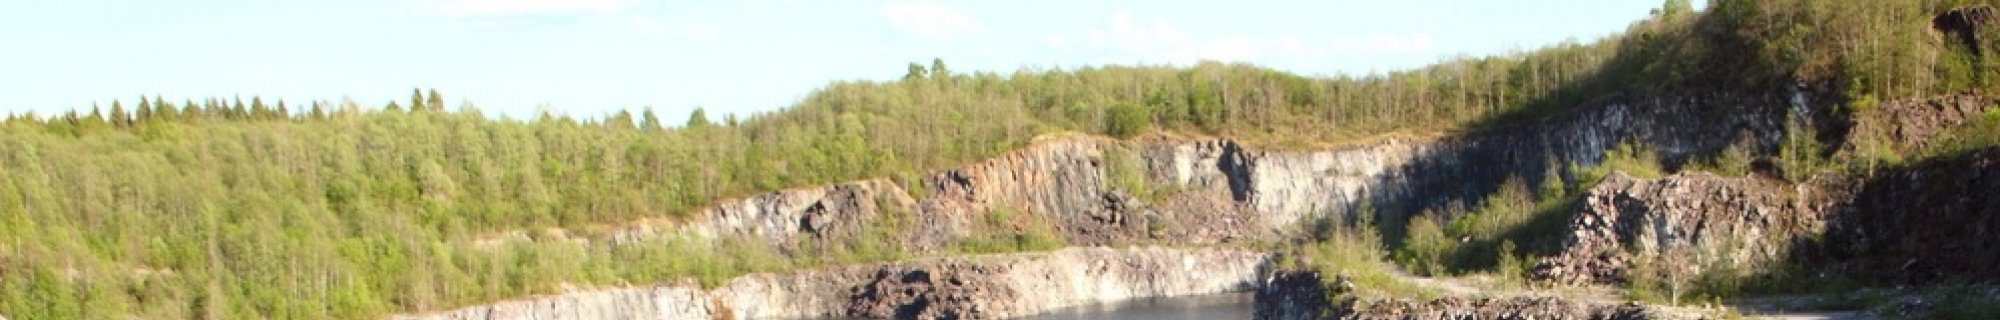 Quarry photograph